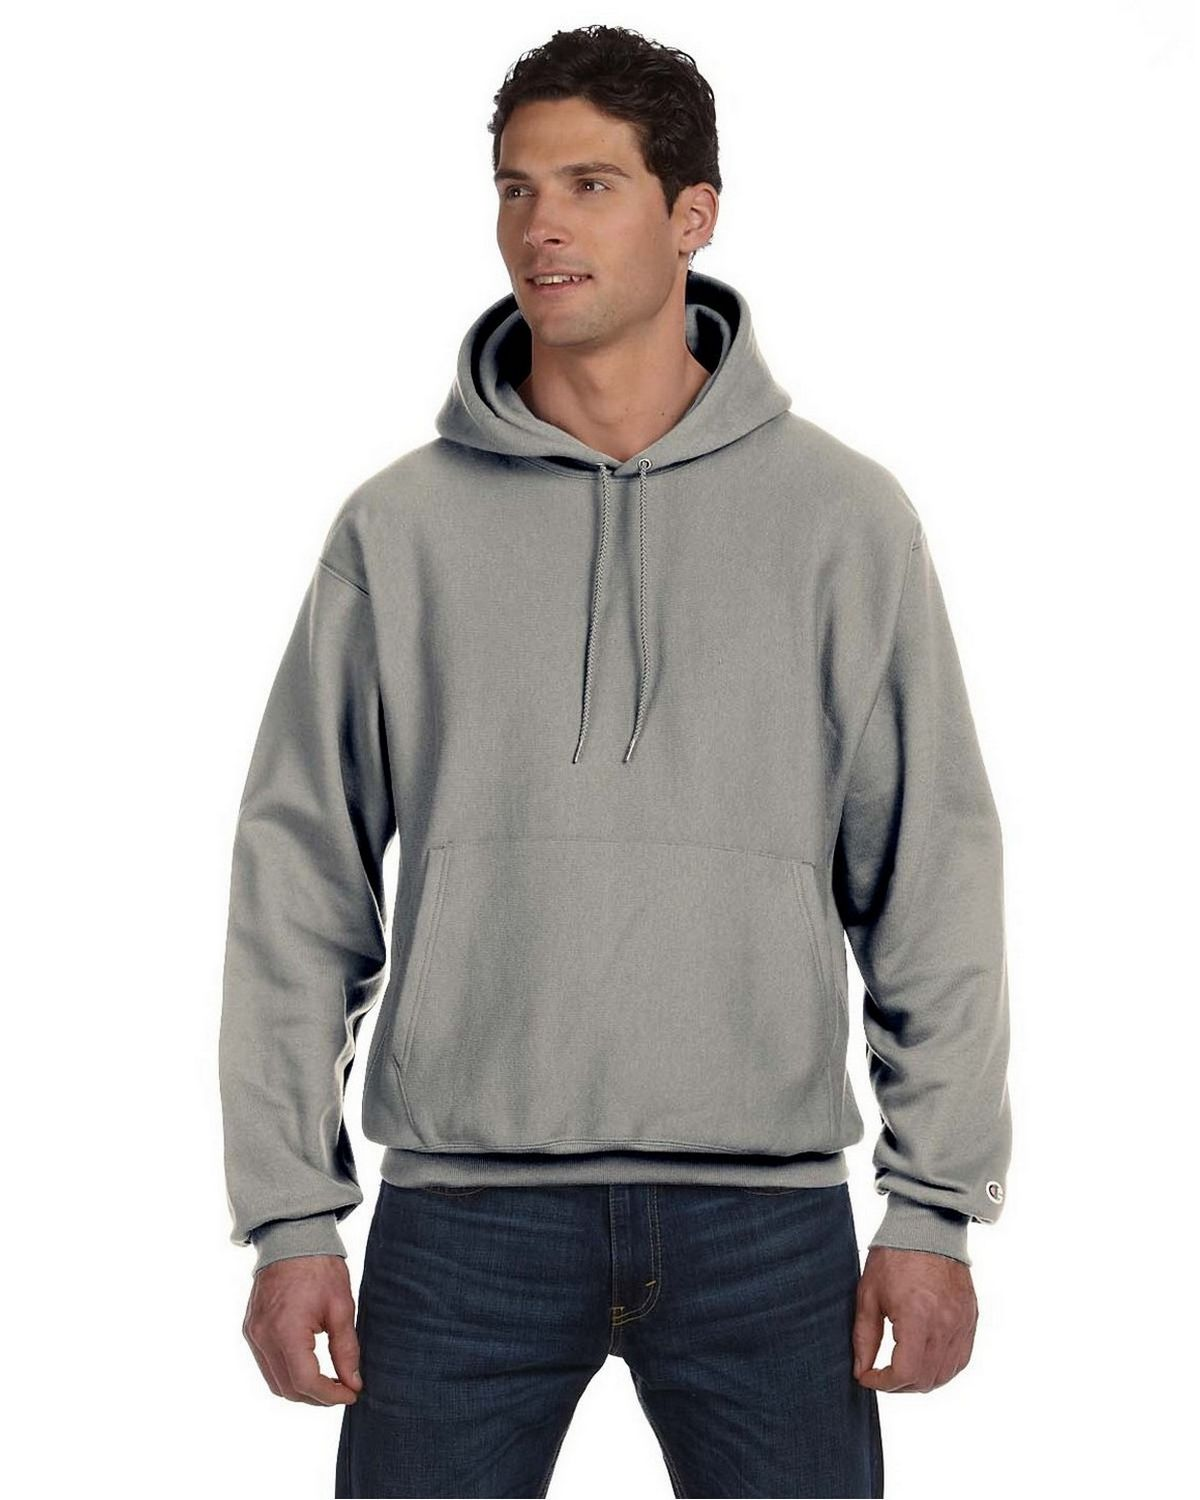 Champion S1051 Reverse Weave Hood - Oxford Grey - XL S1051